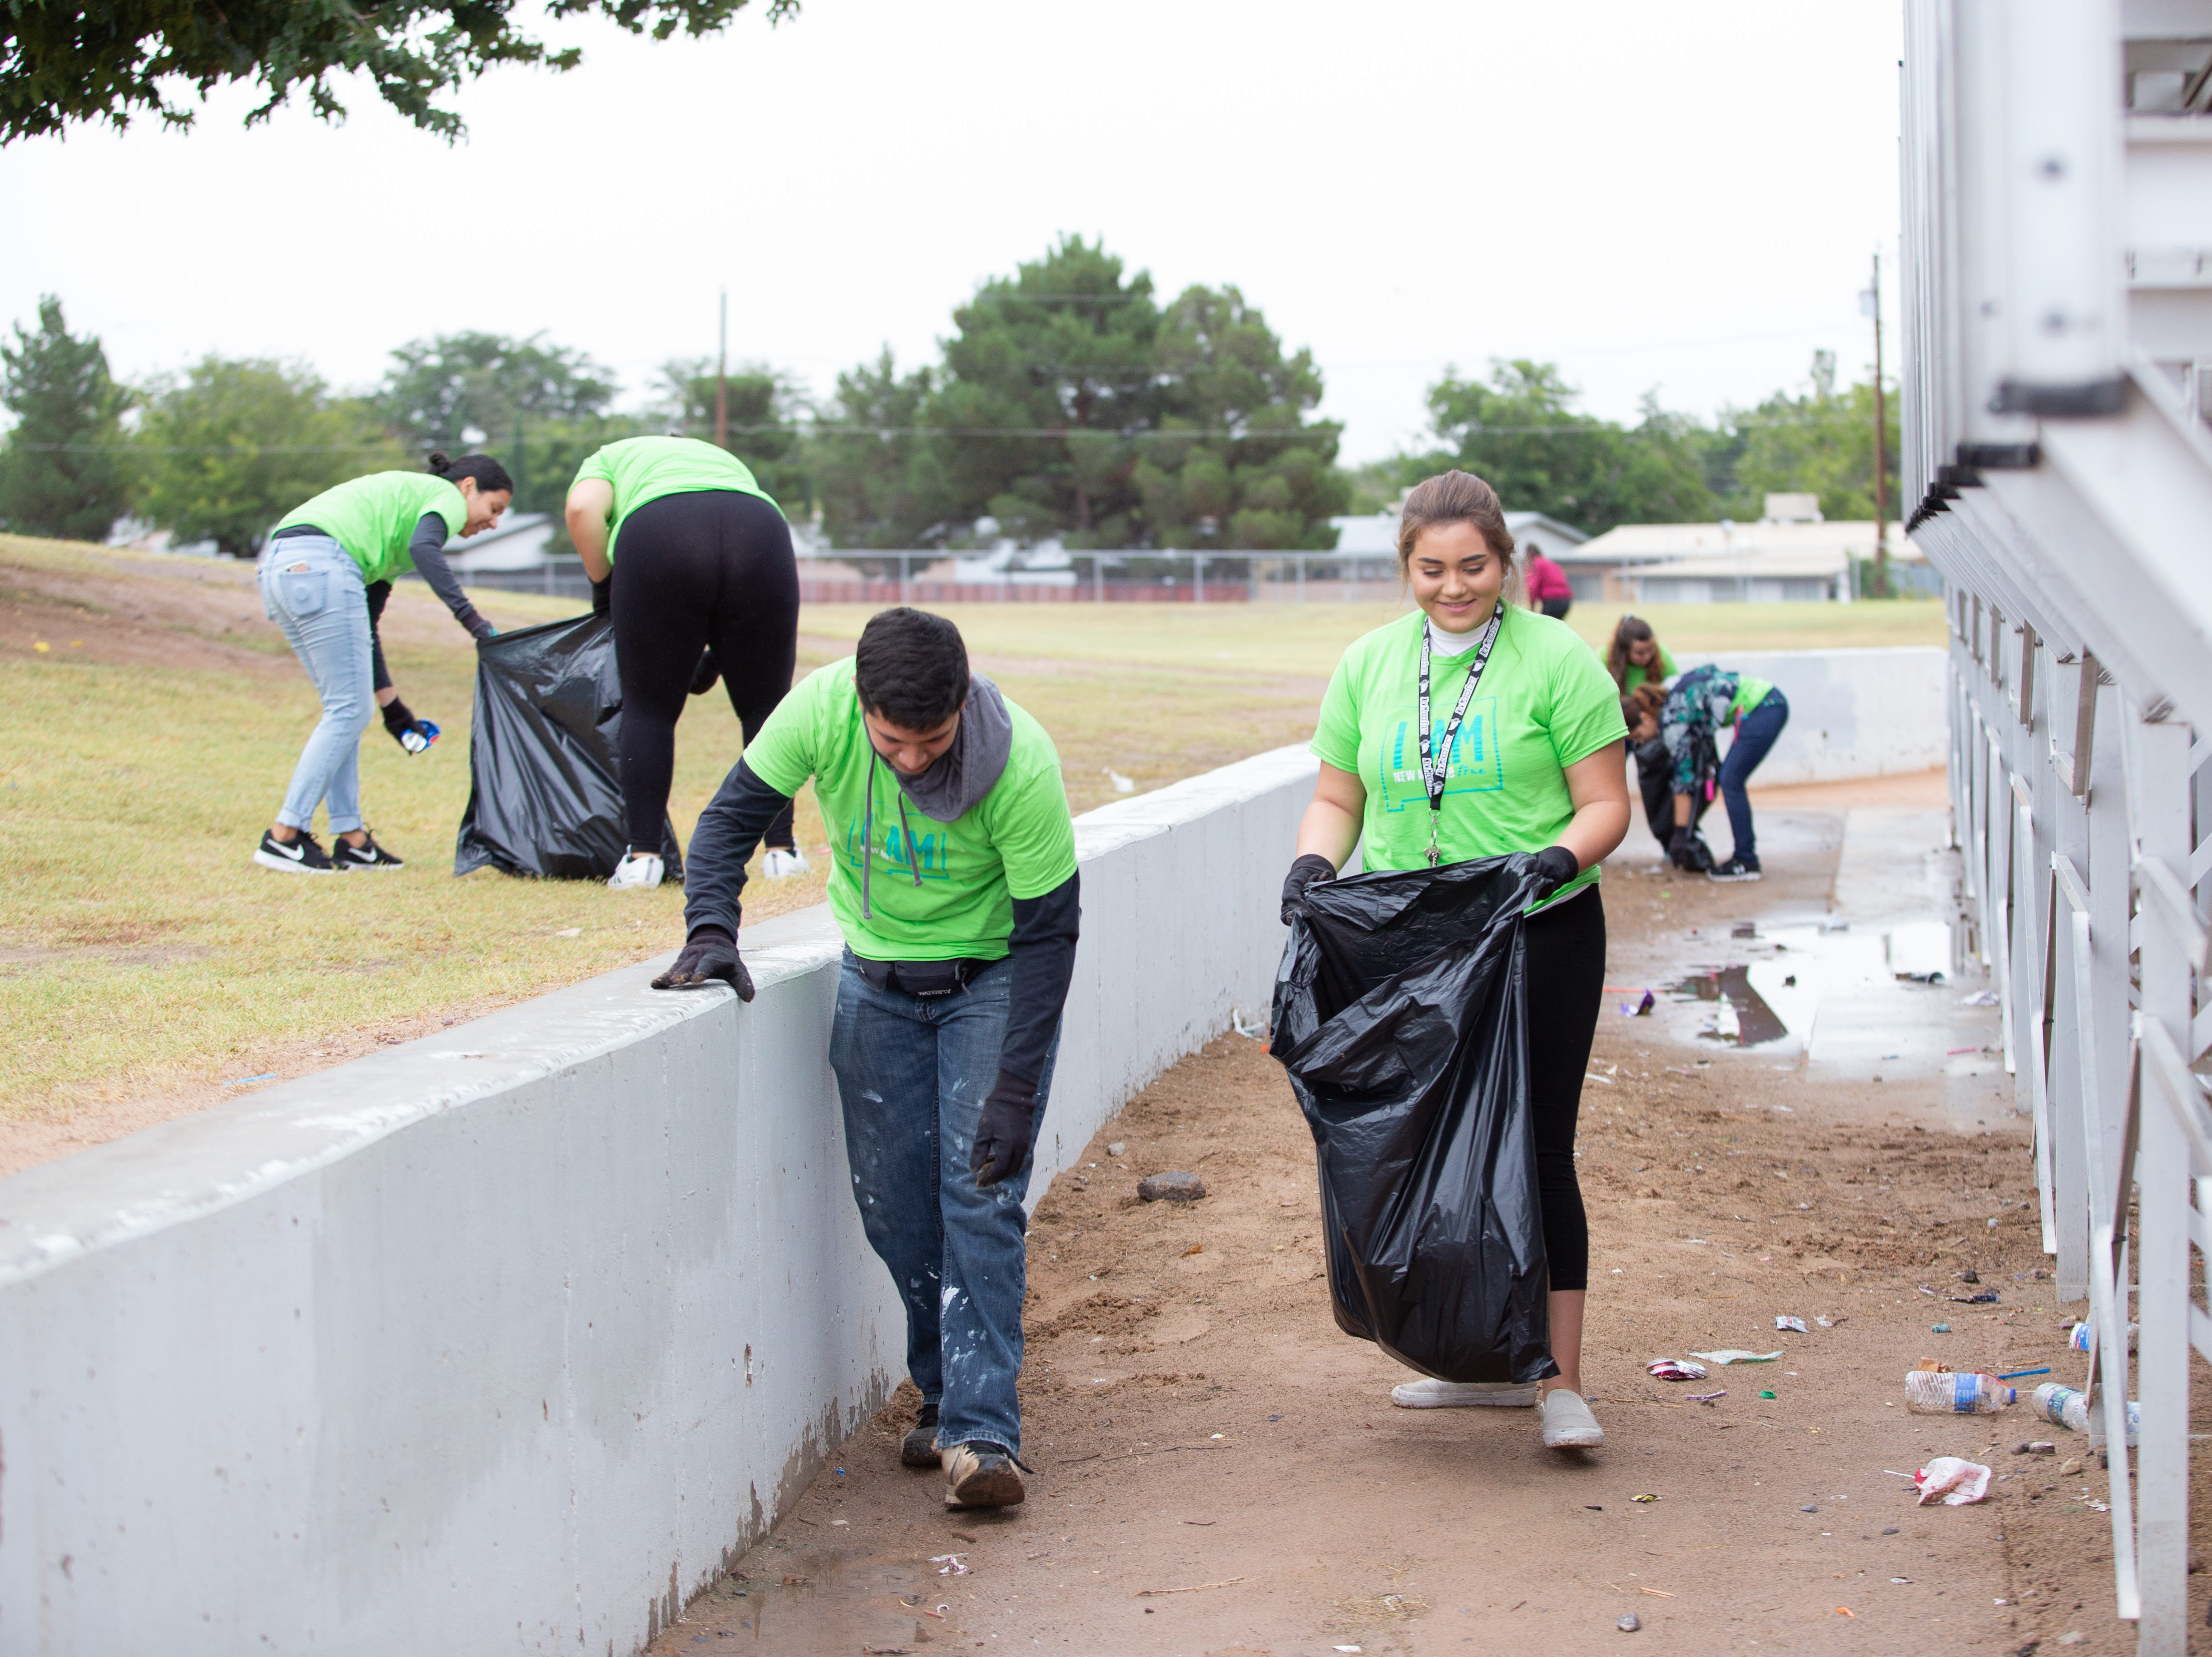 ASNMSU students Gabriel Ronquillo and Chloe Jimenez pickup trash during the city wide cleanup event  held on Saturday, October 13, 2018.